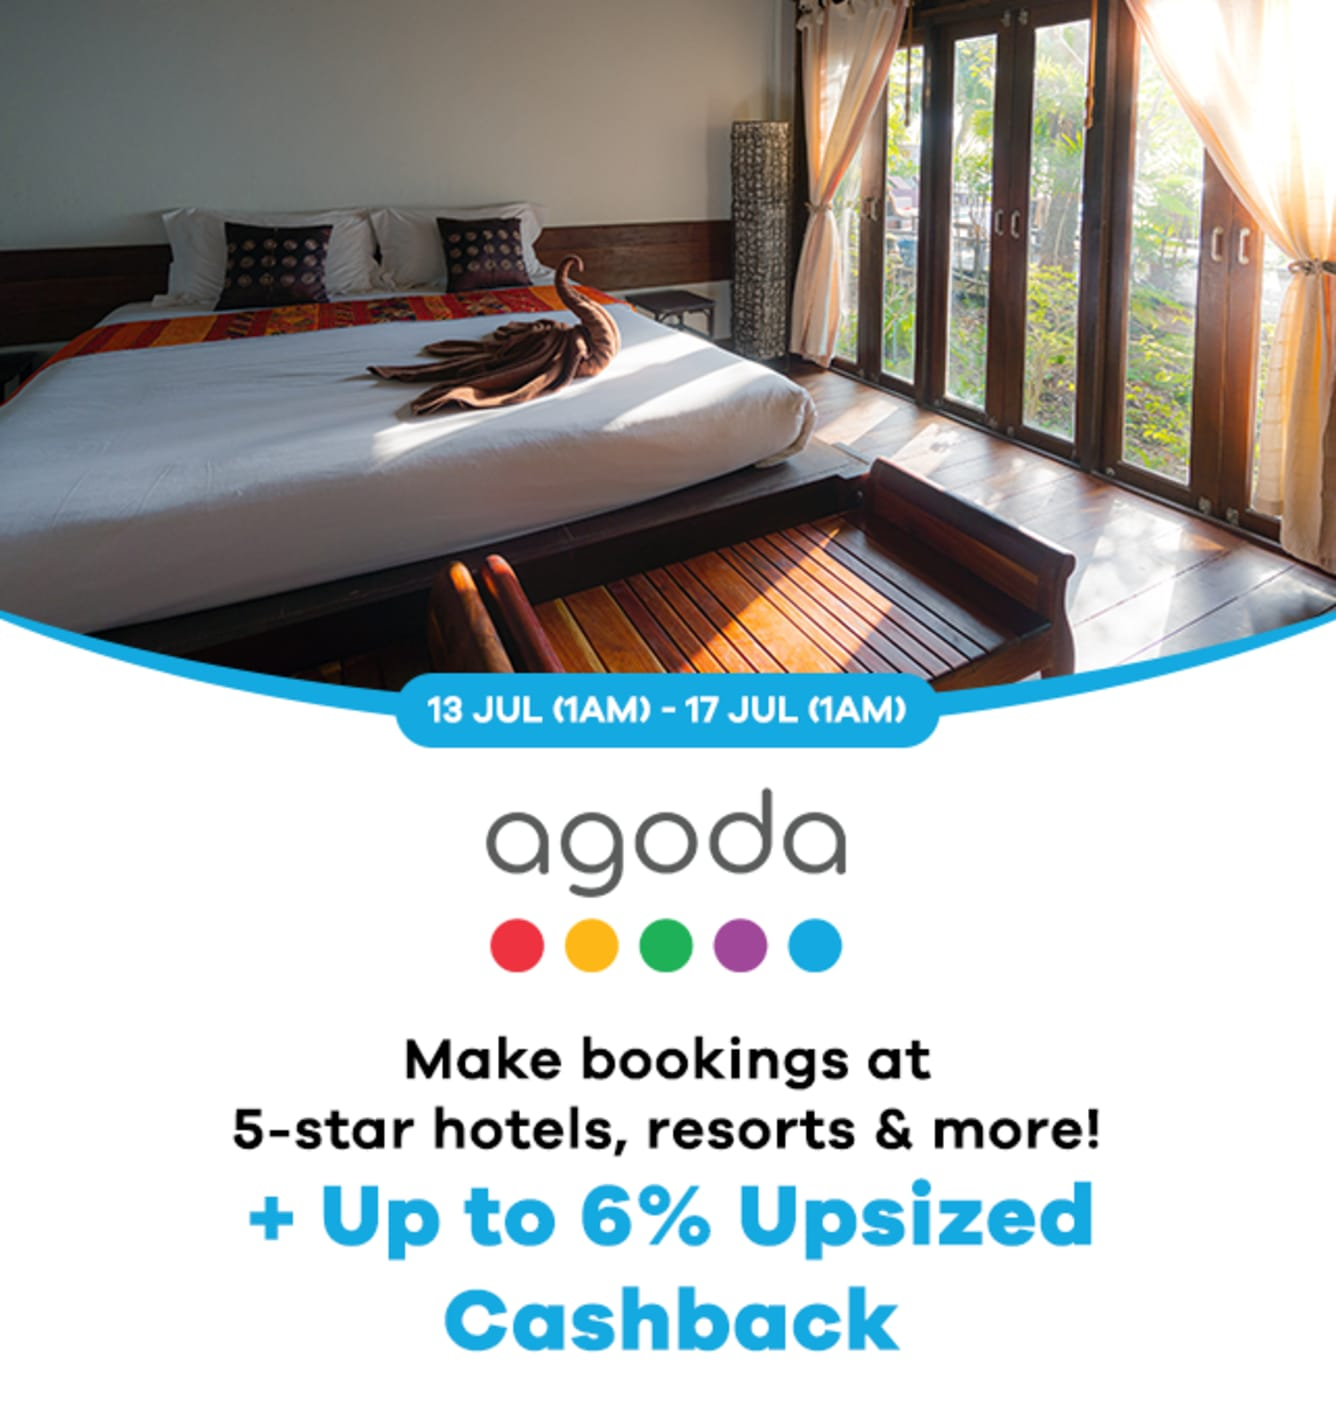 Agoda: Up to 7% Upsized Cashback